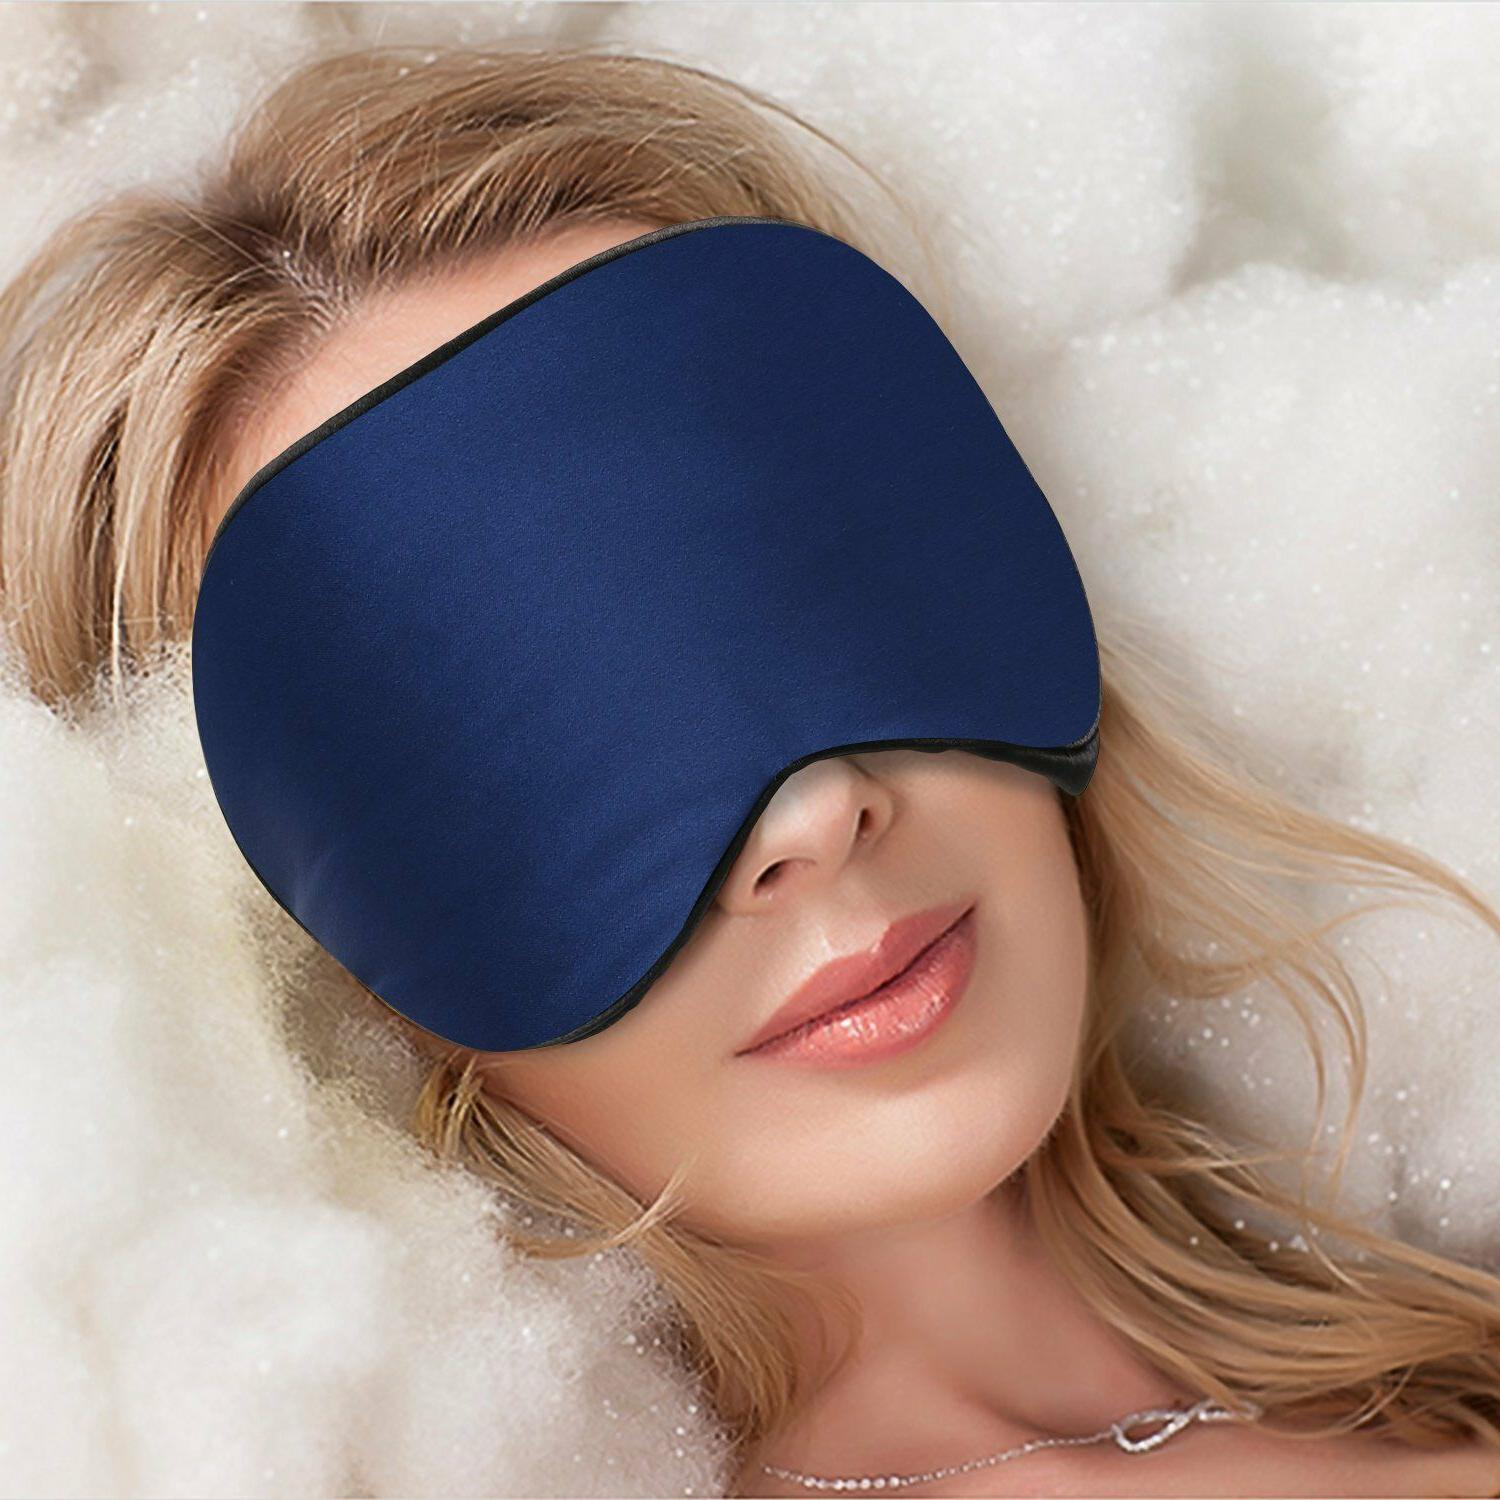 Silk Sleeping Aid Light, Navy Seller